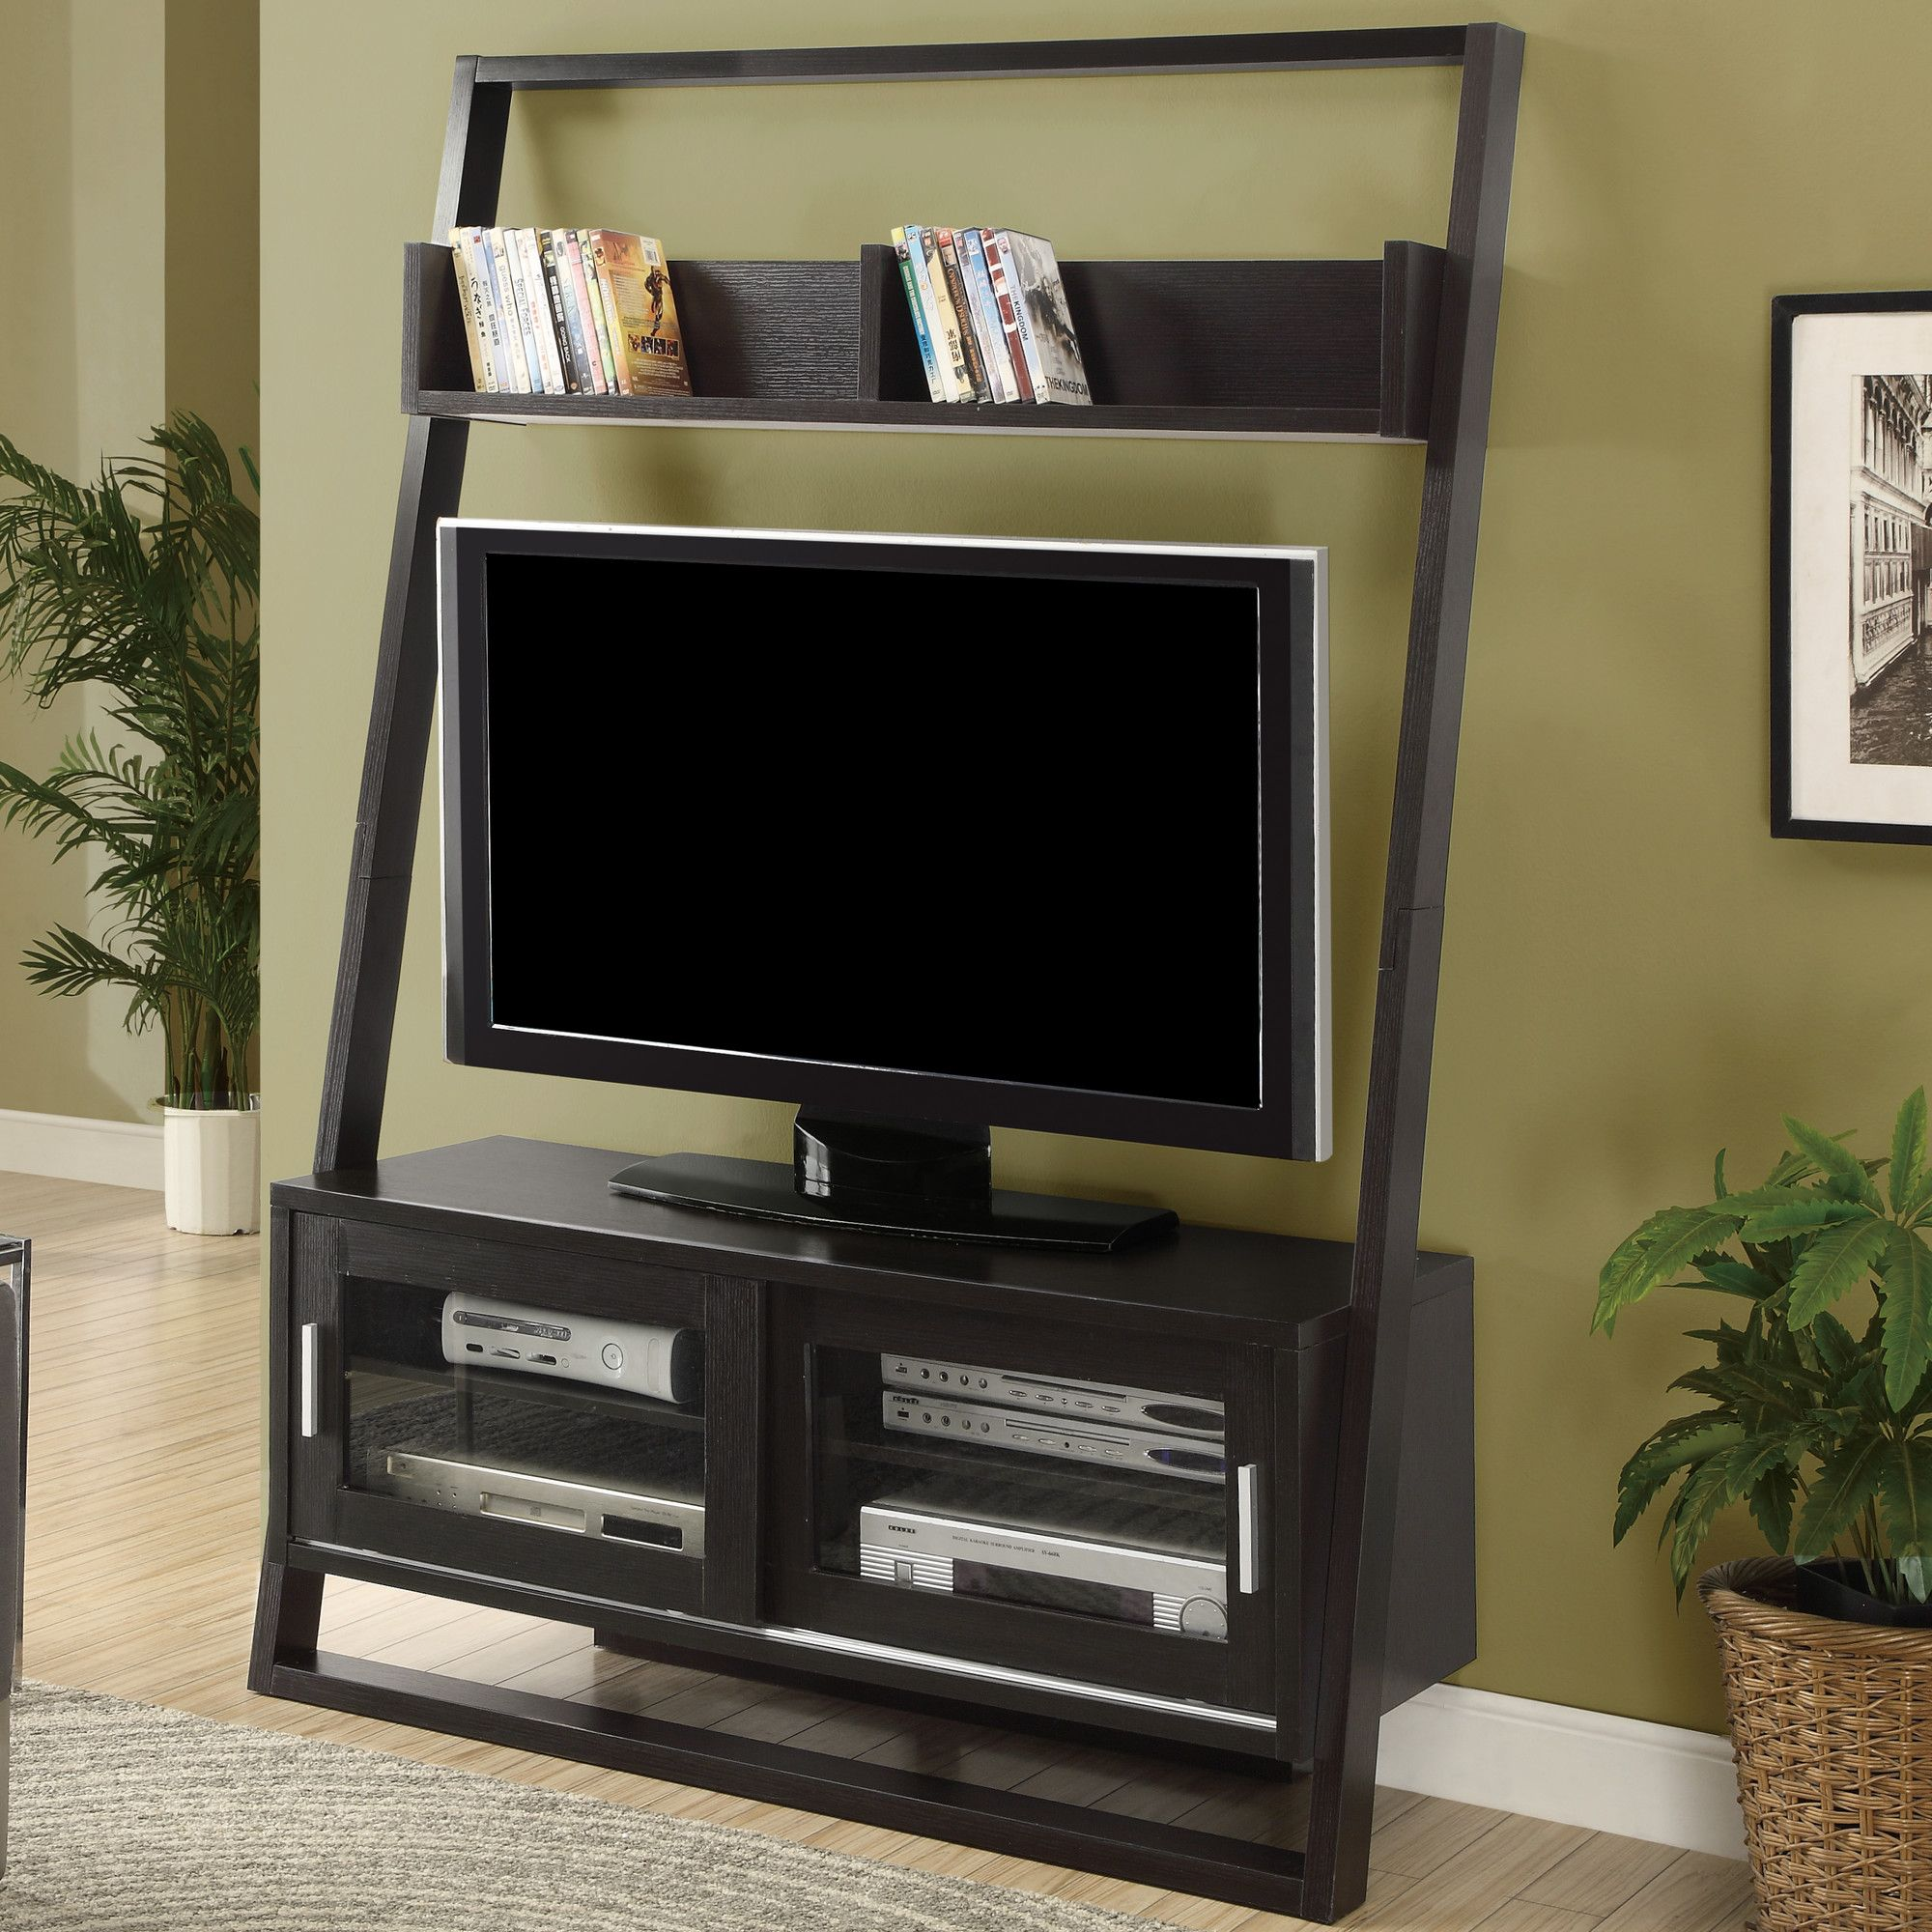 Ladder tv stands can be used for many different things and when time